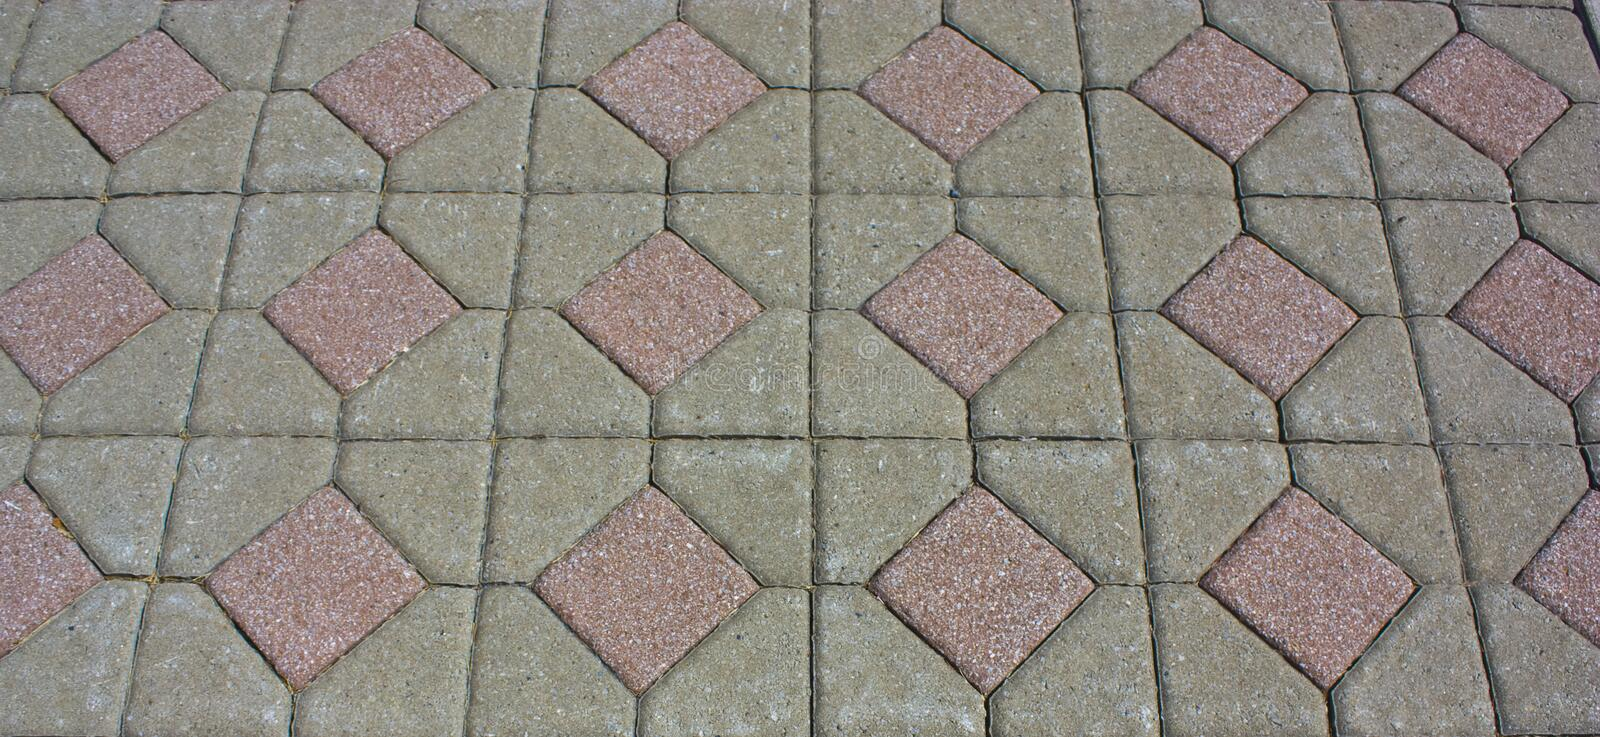 Download Decorative Bricks stock image. Image of outside, garden - 10839333